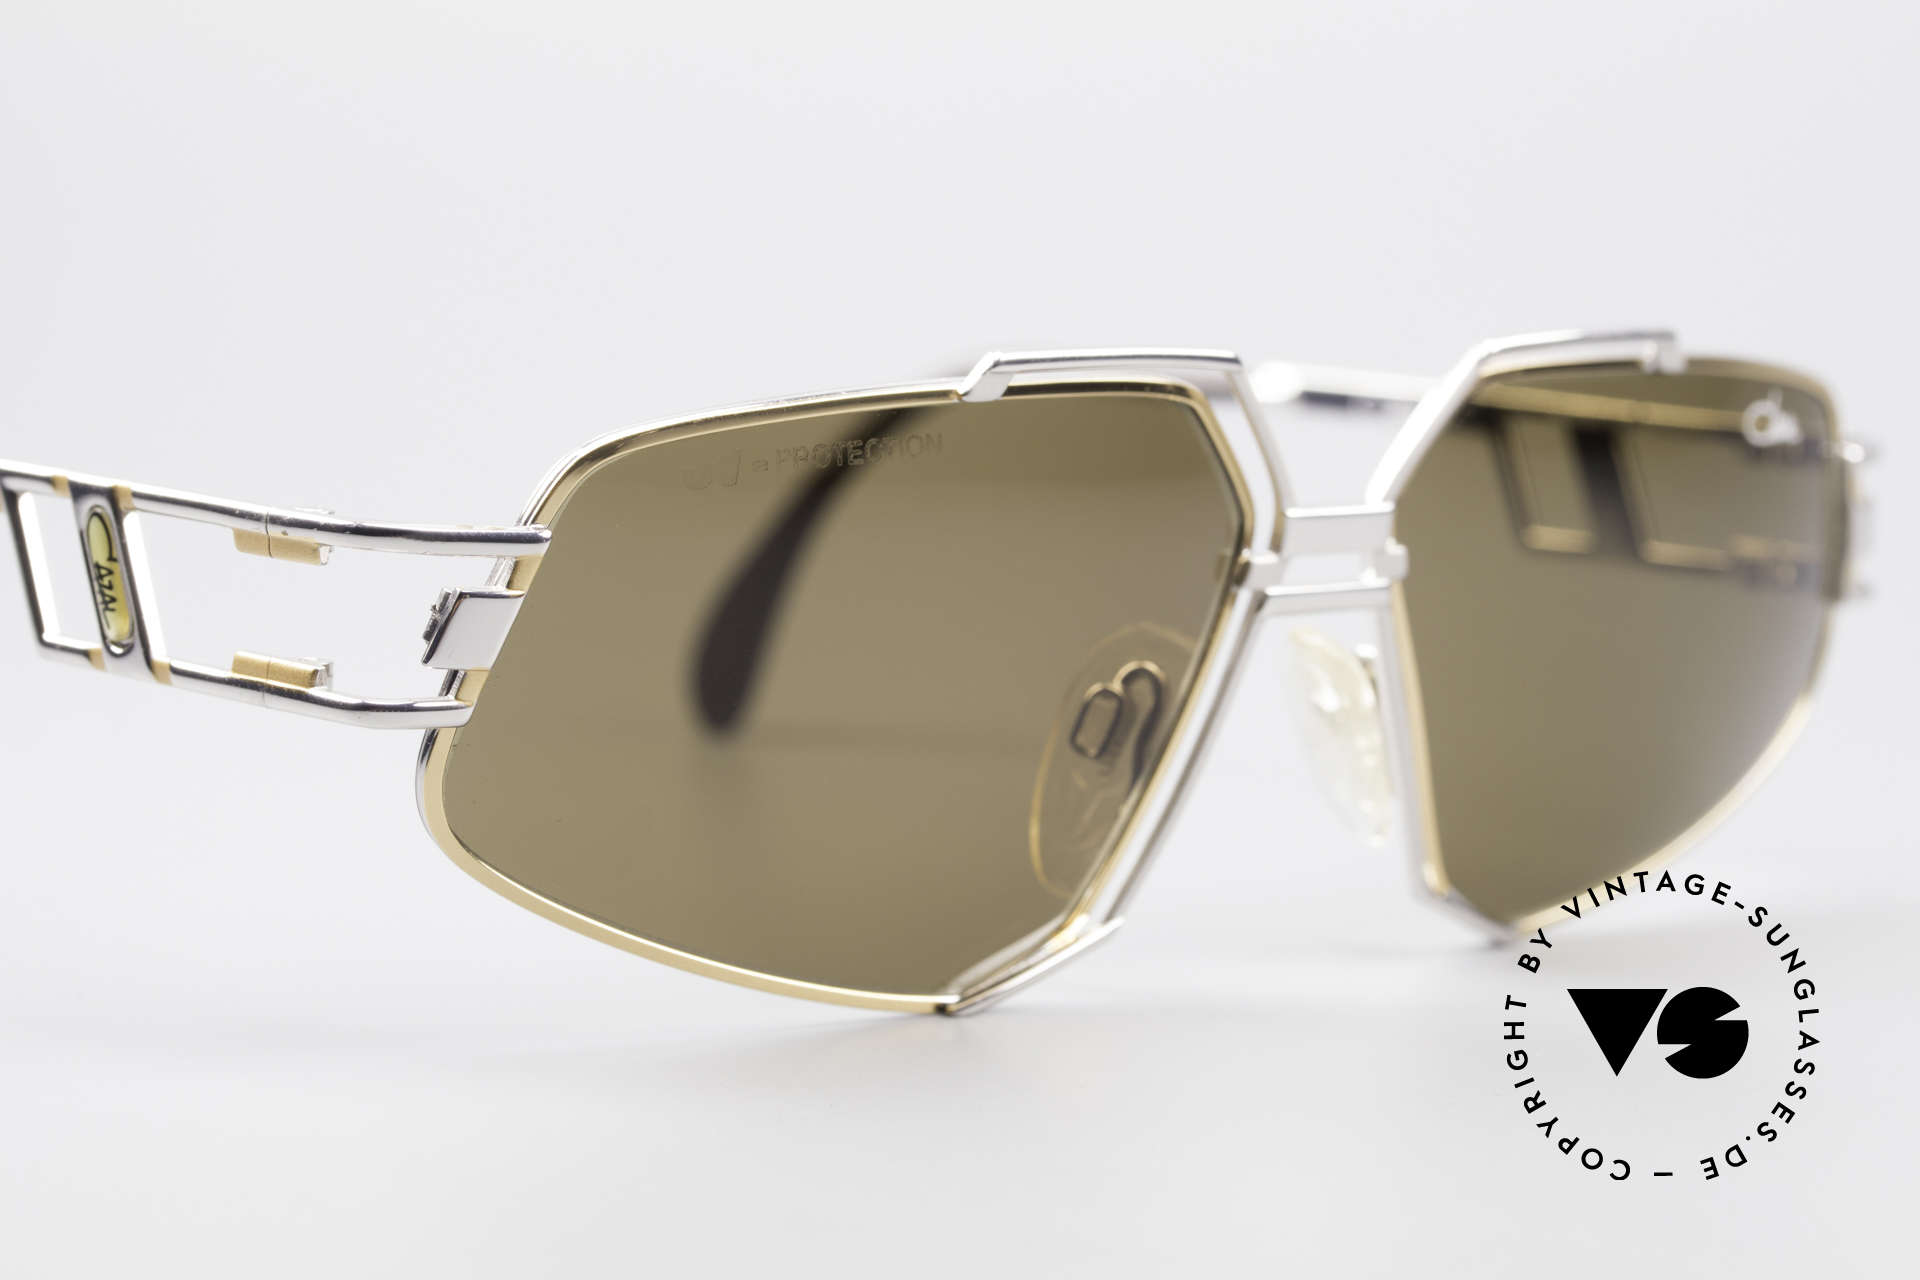 Cazal 961 Rare Designer Sunglasses 90s, ORIGINAL 90's quality (lenses with 'UV-protection' logo), Made for Men and Women